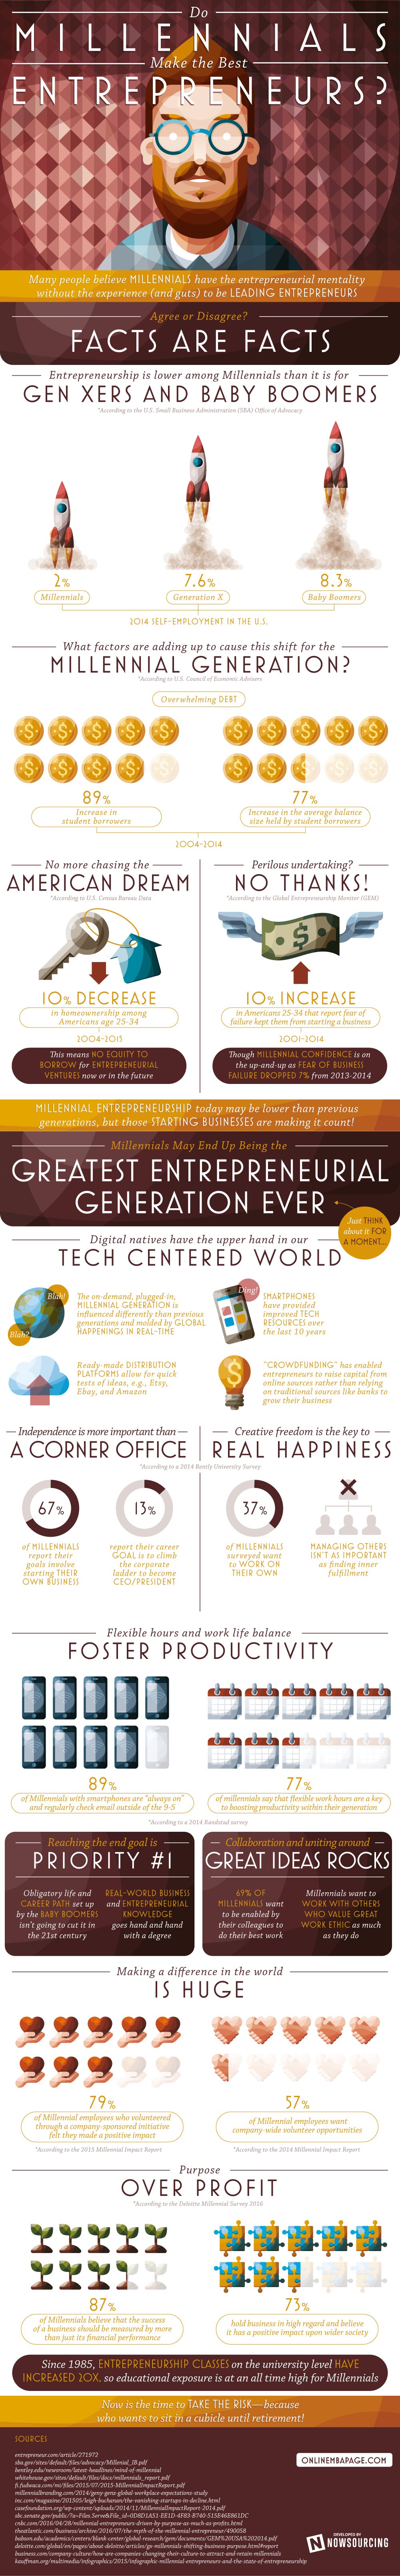 Do Millennials Make The Best Entrepreneurs?